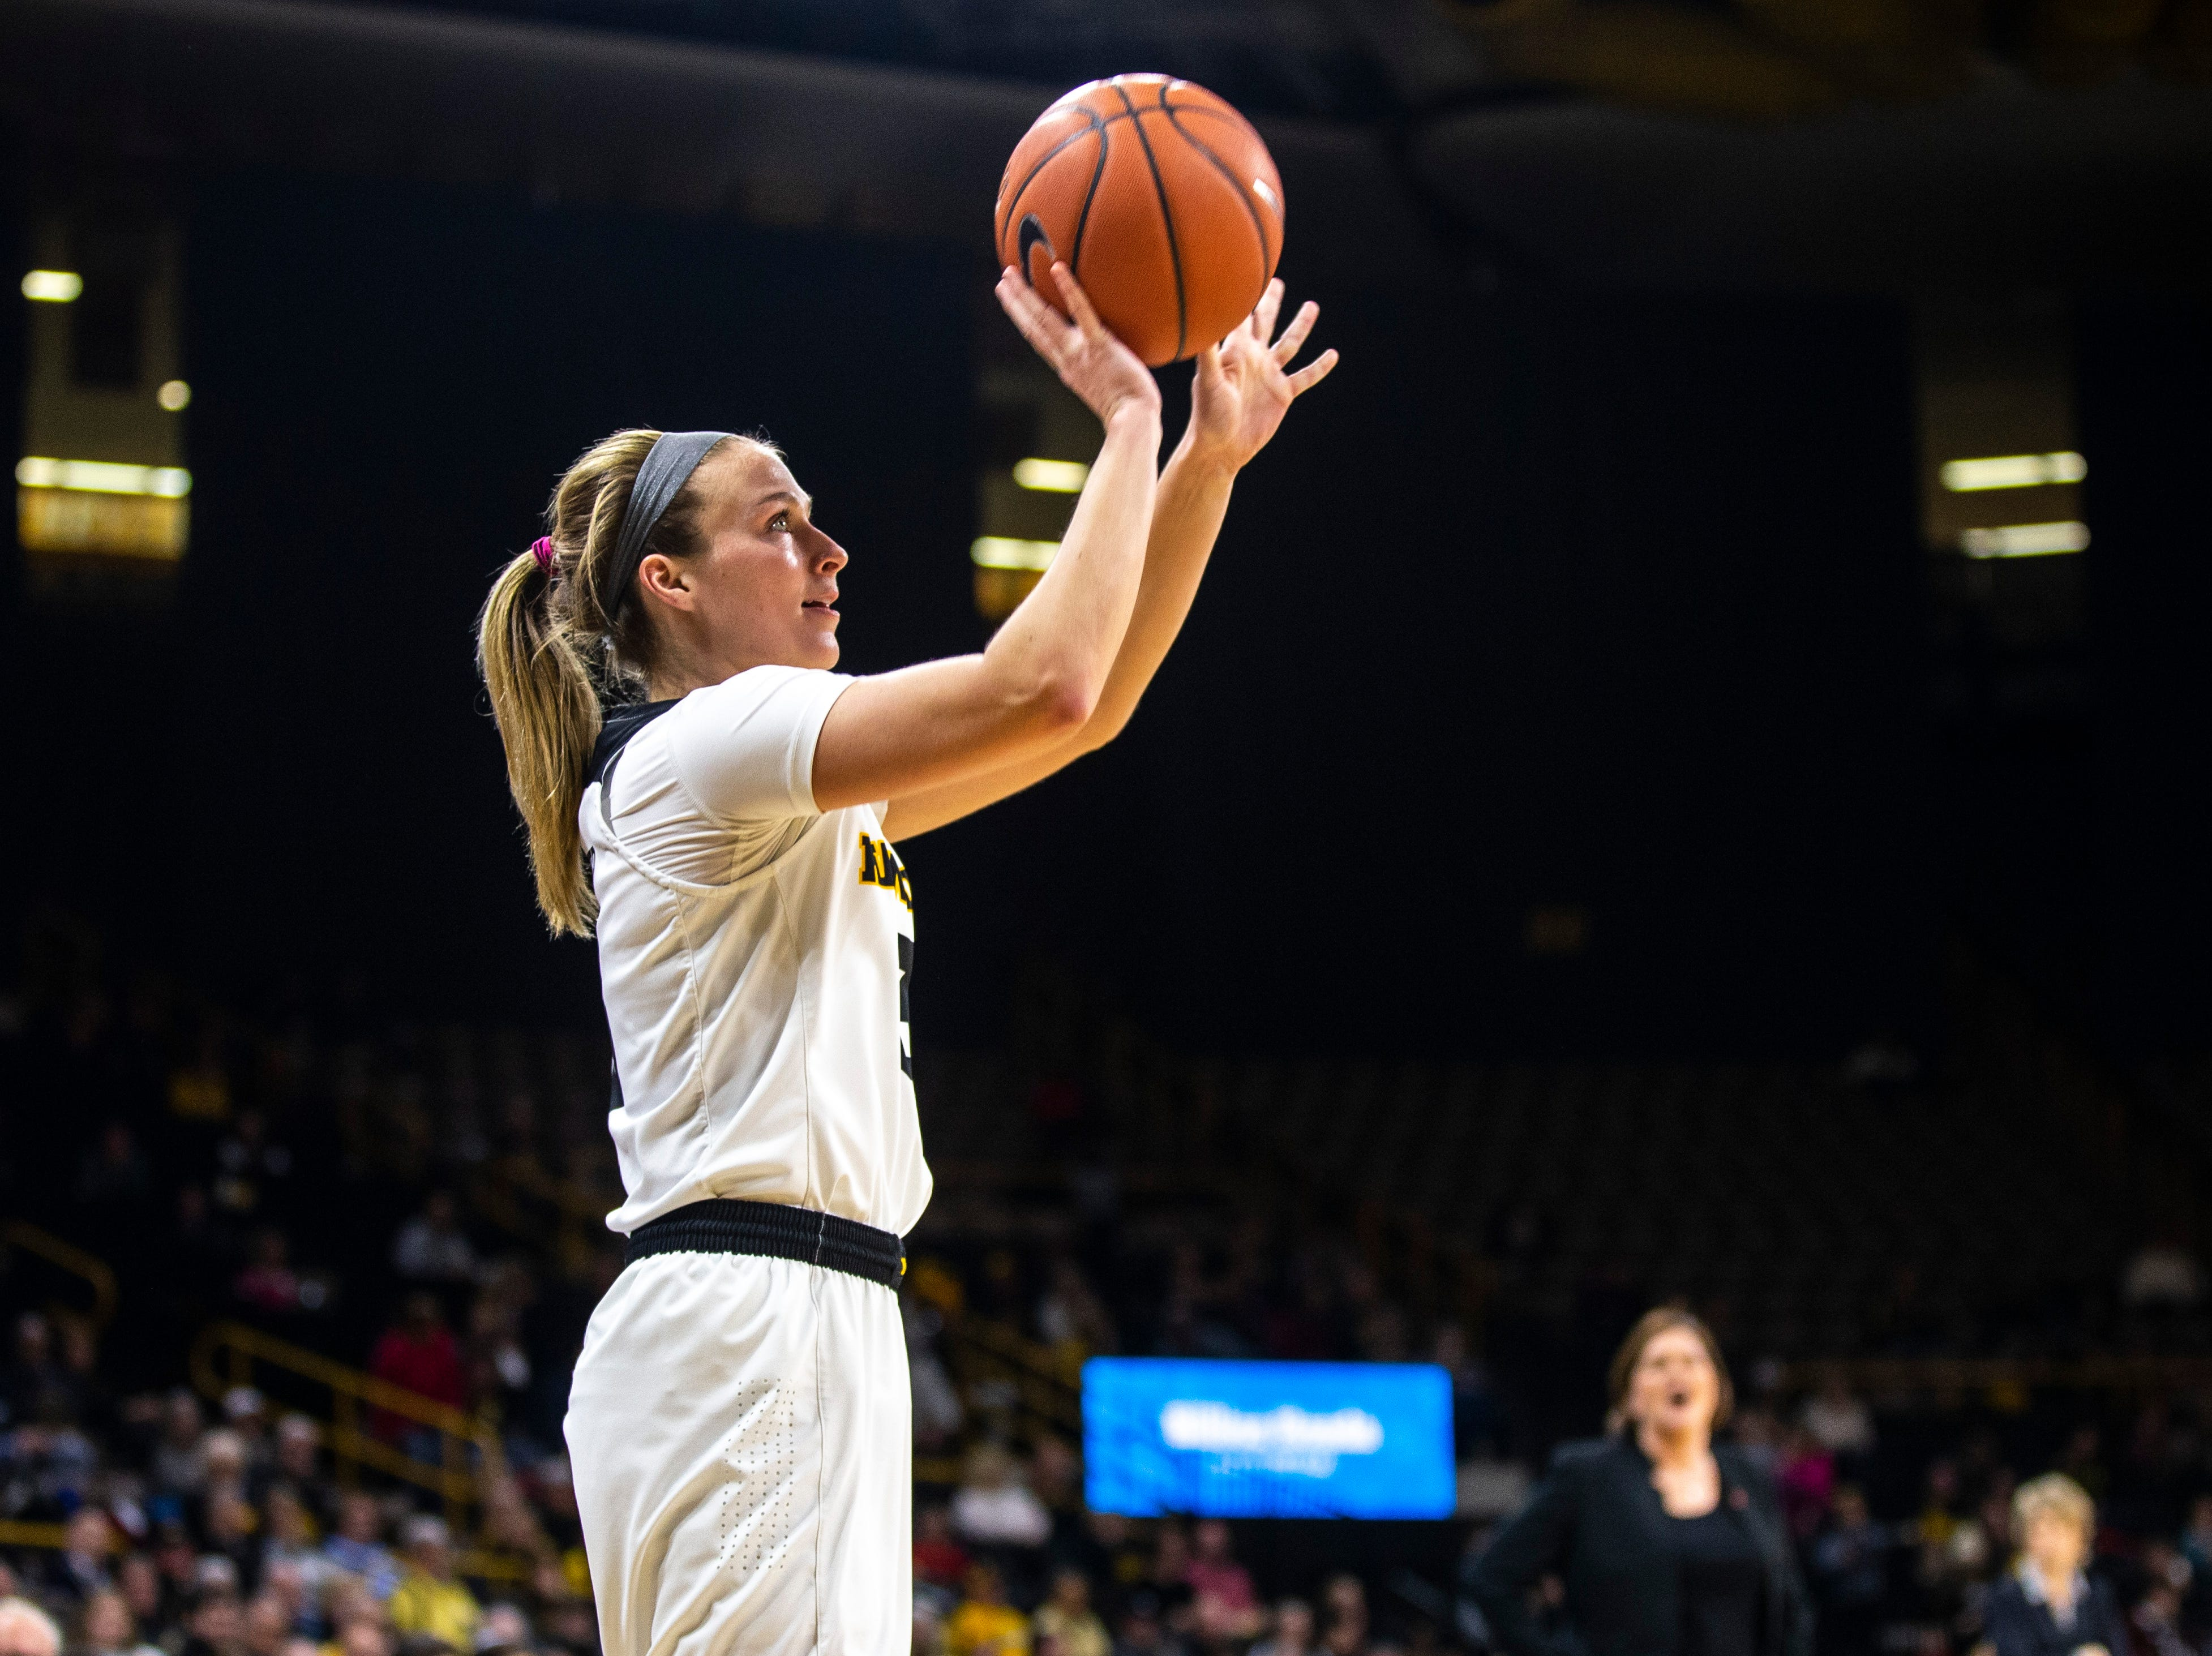 Iowa guard Makenzie Meyer (3) shoots a 3-point basket during a NCAA Big Ten Conference women's basketball game on Thursday, Feb. 14, 2019 at Carver-Hawkeye Arena in Iowa City, Iowa.